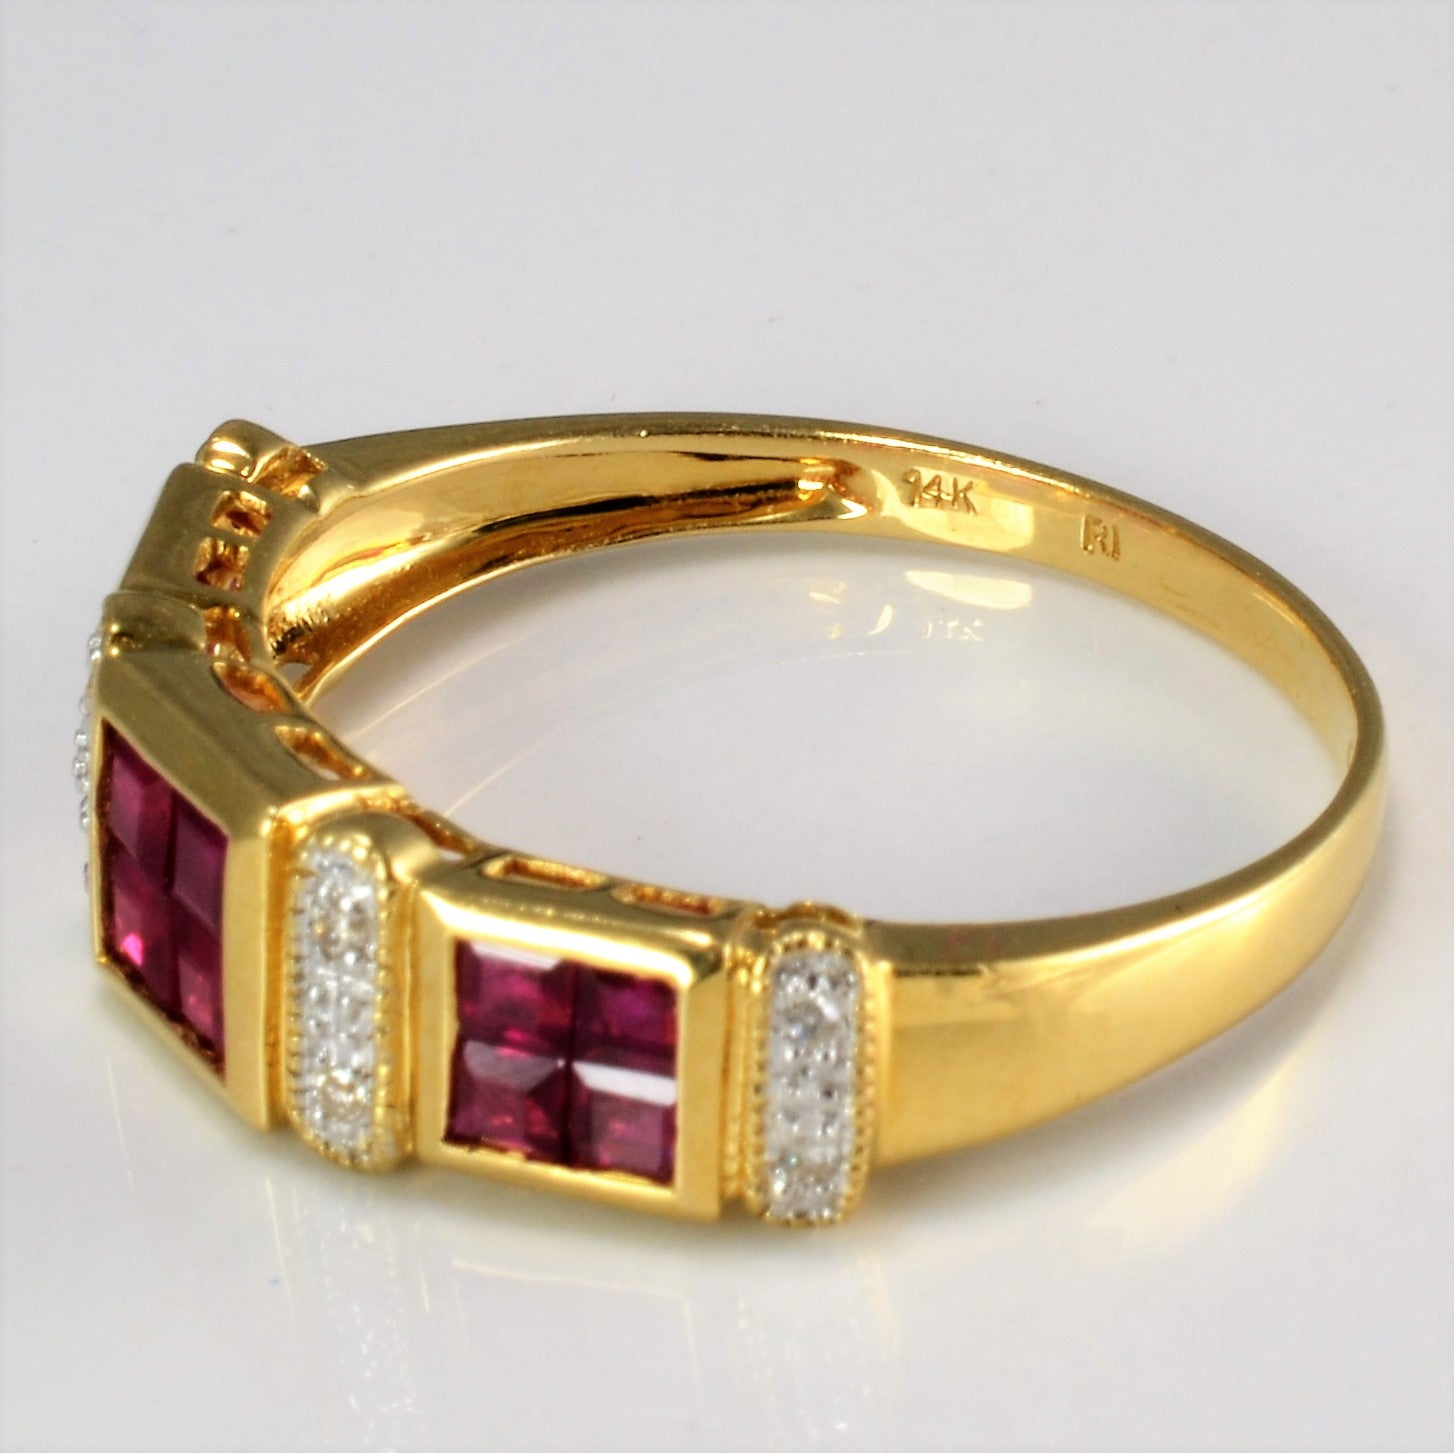 Bezel Set Ruby & Diamond Ring | 0.08 ctw, SZ 10 |